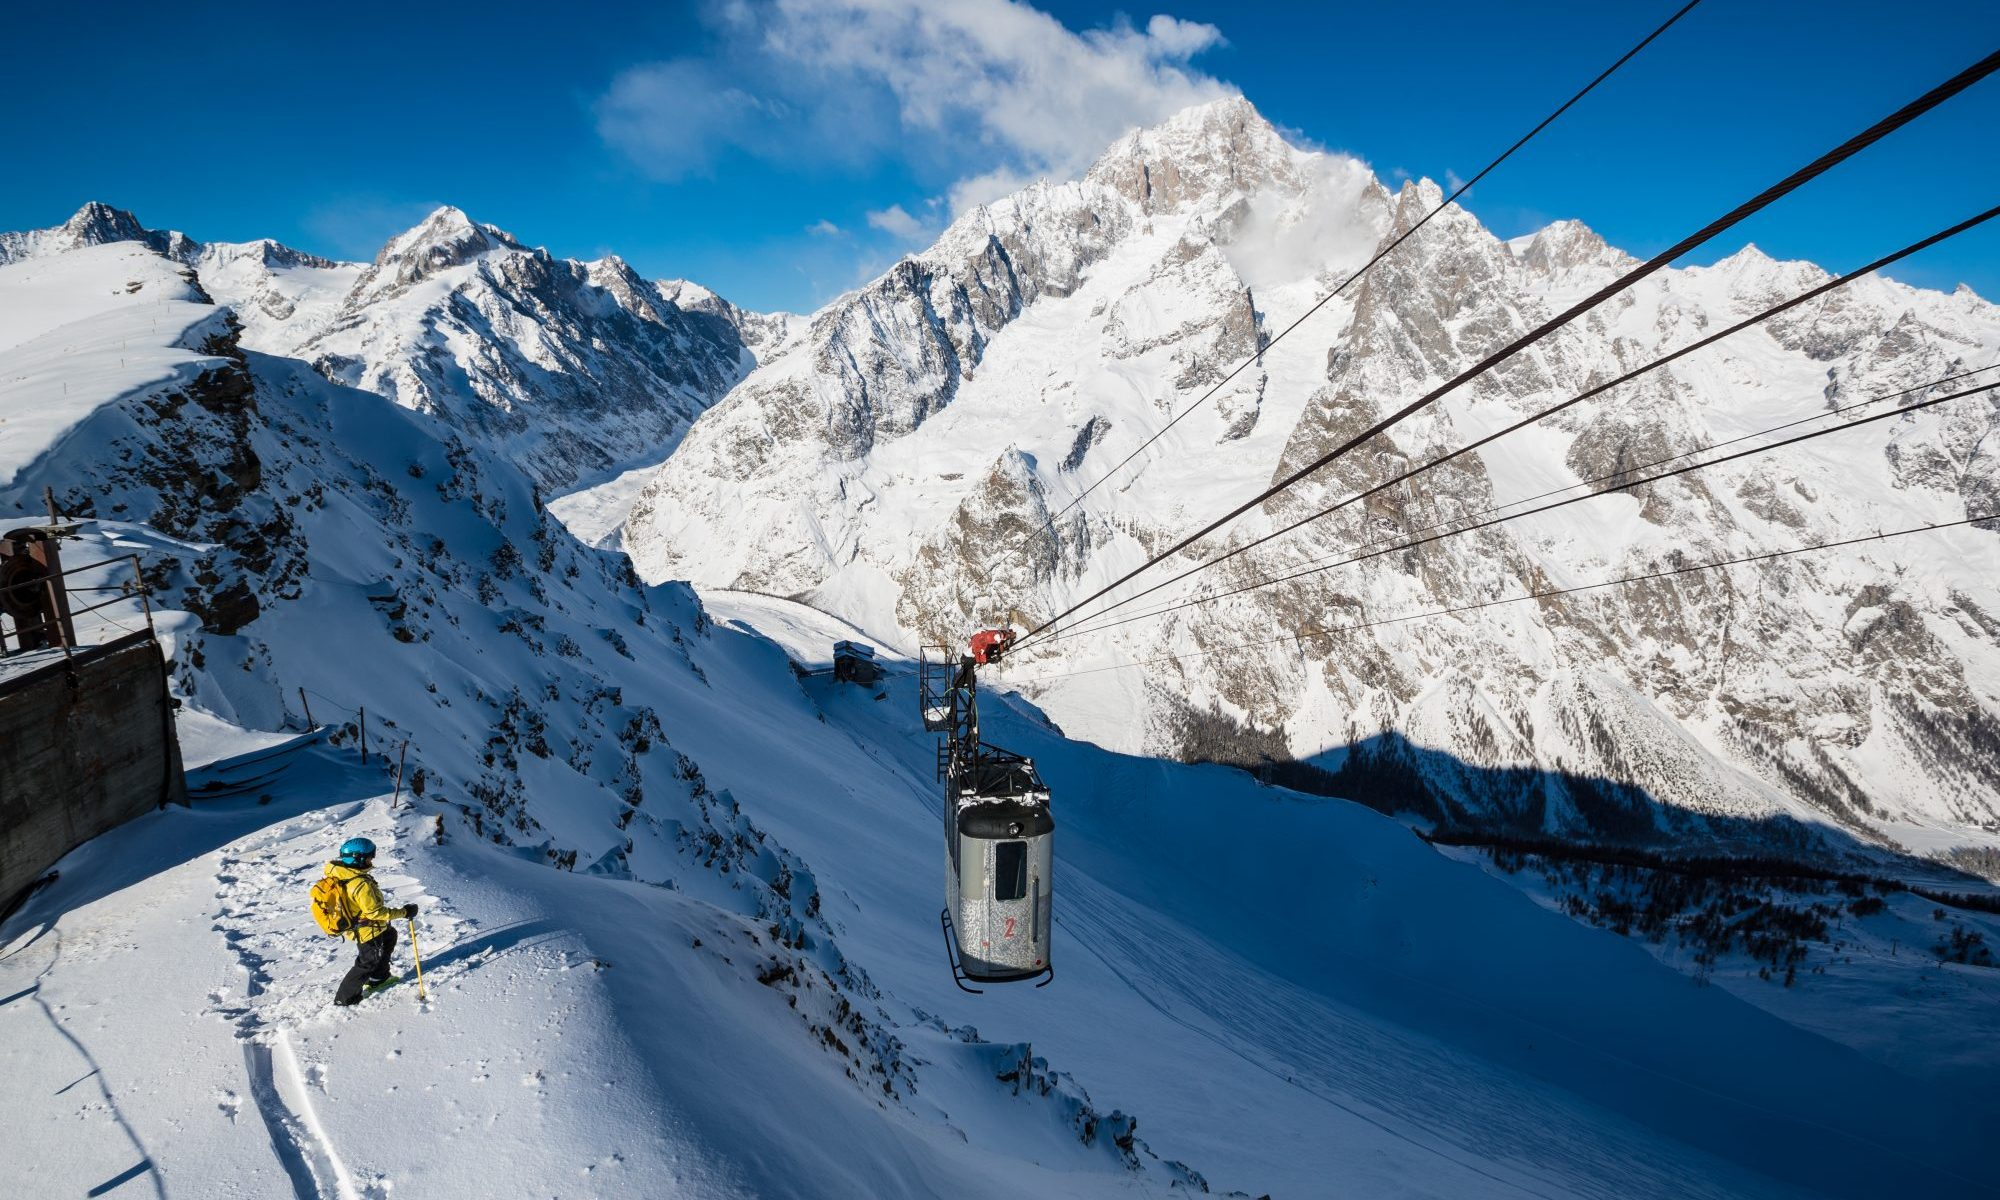 Arp - Courmayeur Mont blanc Funivie - Photo: Lorenzo Belfrond. Courmayeur Mont Blanc Funivie is opening two new slopes with amazing panoramic views.